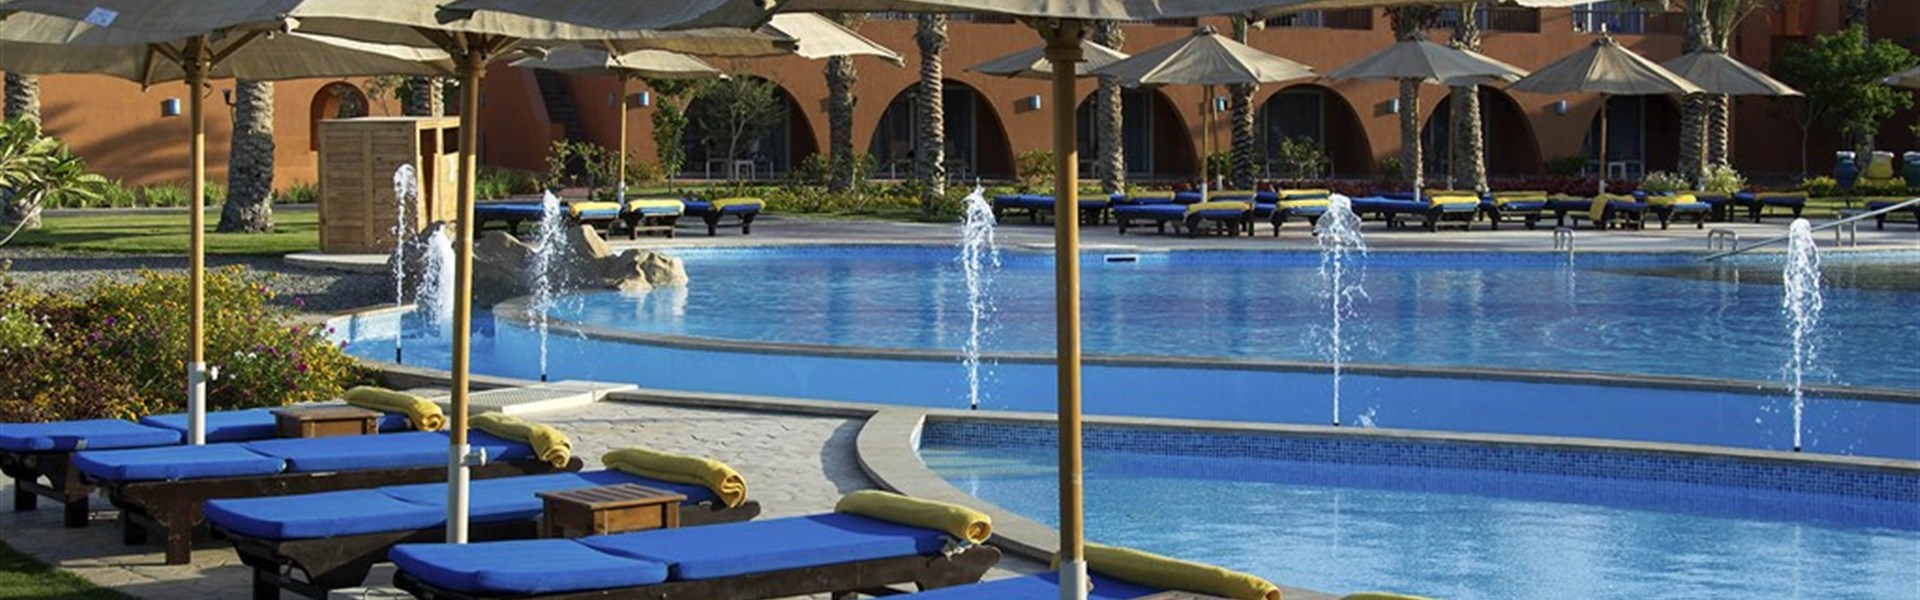 Novotel Marsa Alam 5* hotel and resort -